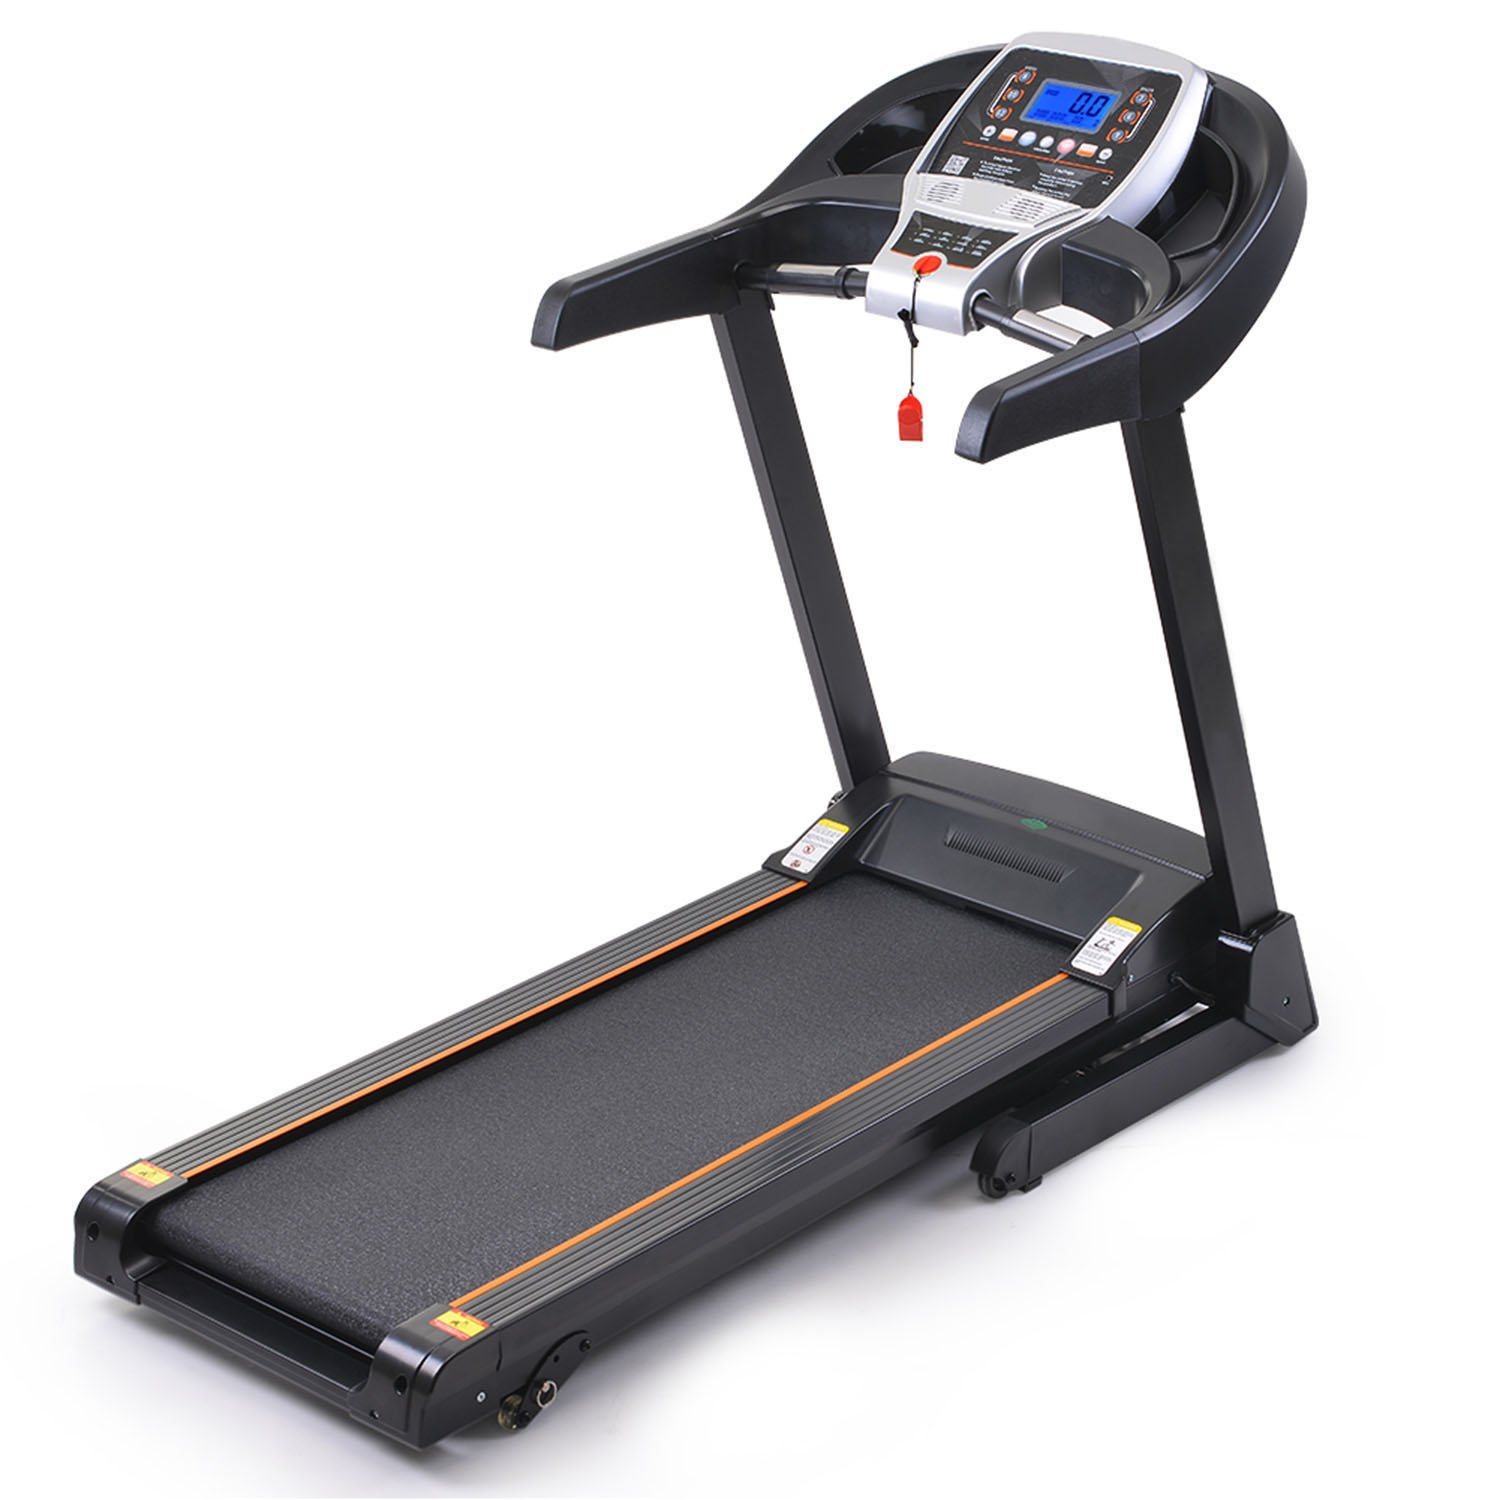 Dicesnow Heavy Duty Treadmill Extra Wide Foldable Running Machine ( 48.0''L x 16.4''W Running Surface) App Control LCD Display Fitness Equipment For Home Offices And Gyms